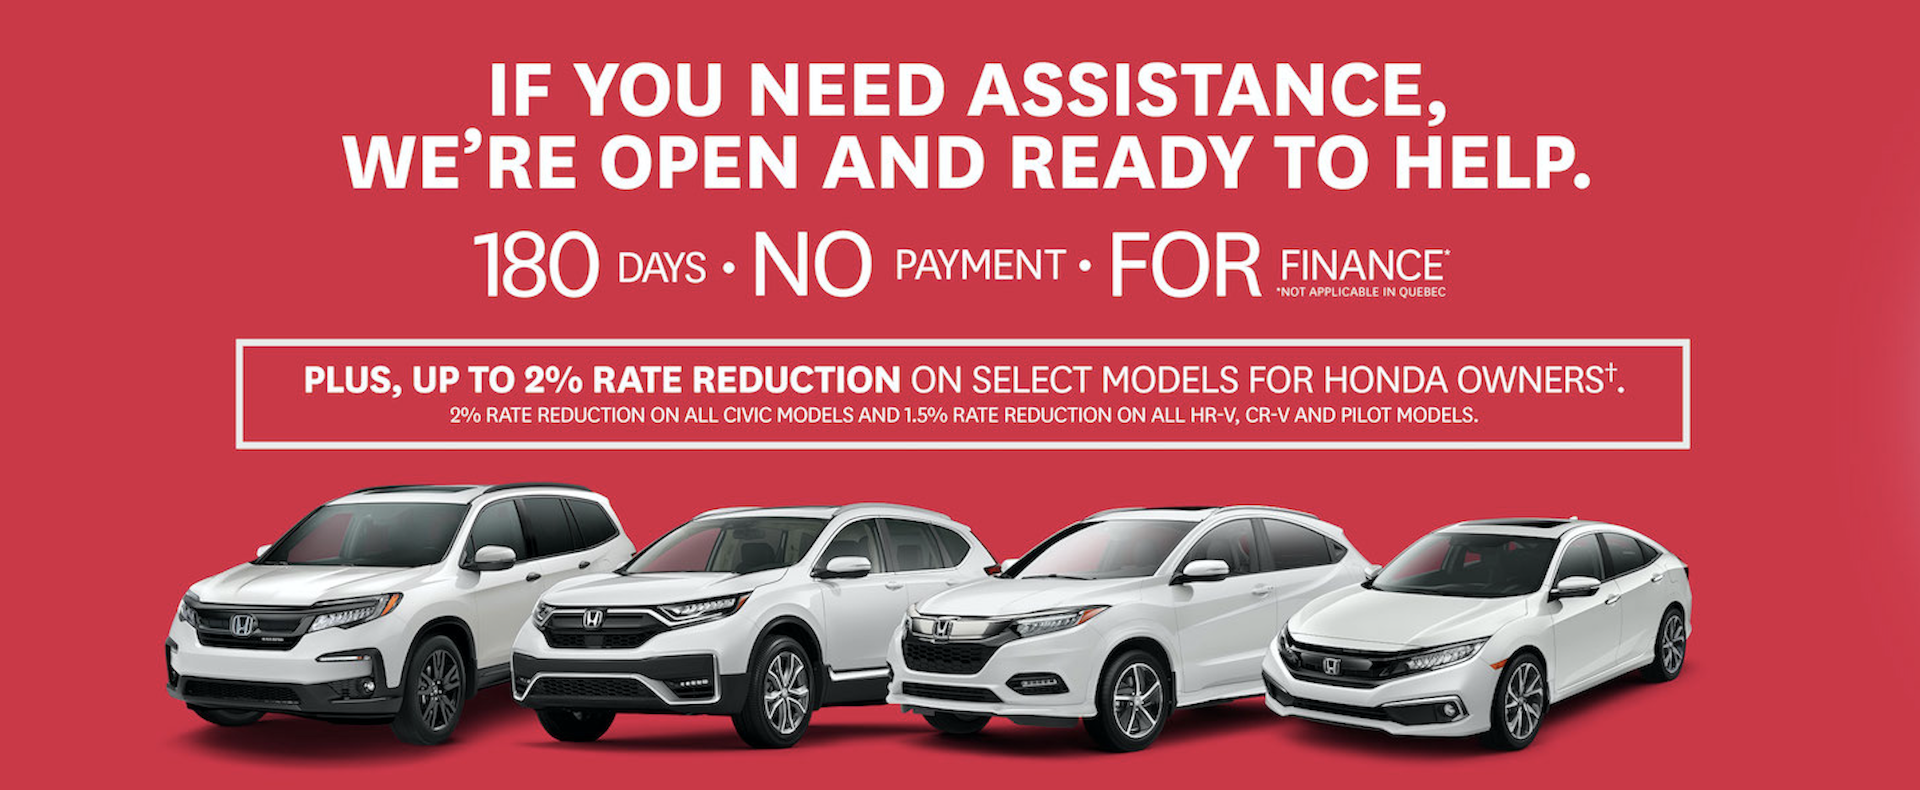 180 Days | No Payment | For Finance + up to 2% Loyalty Rate Reduction